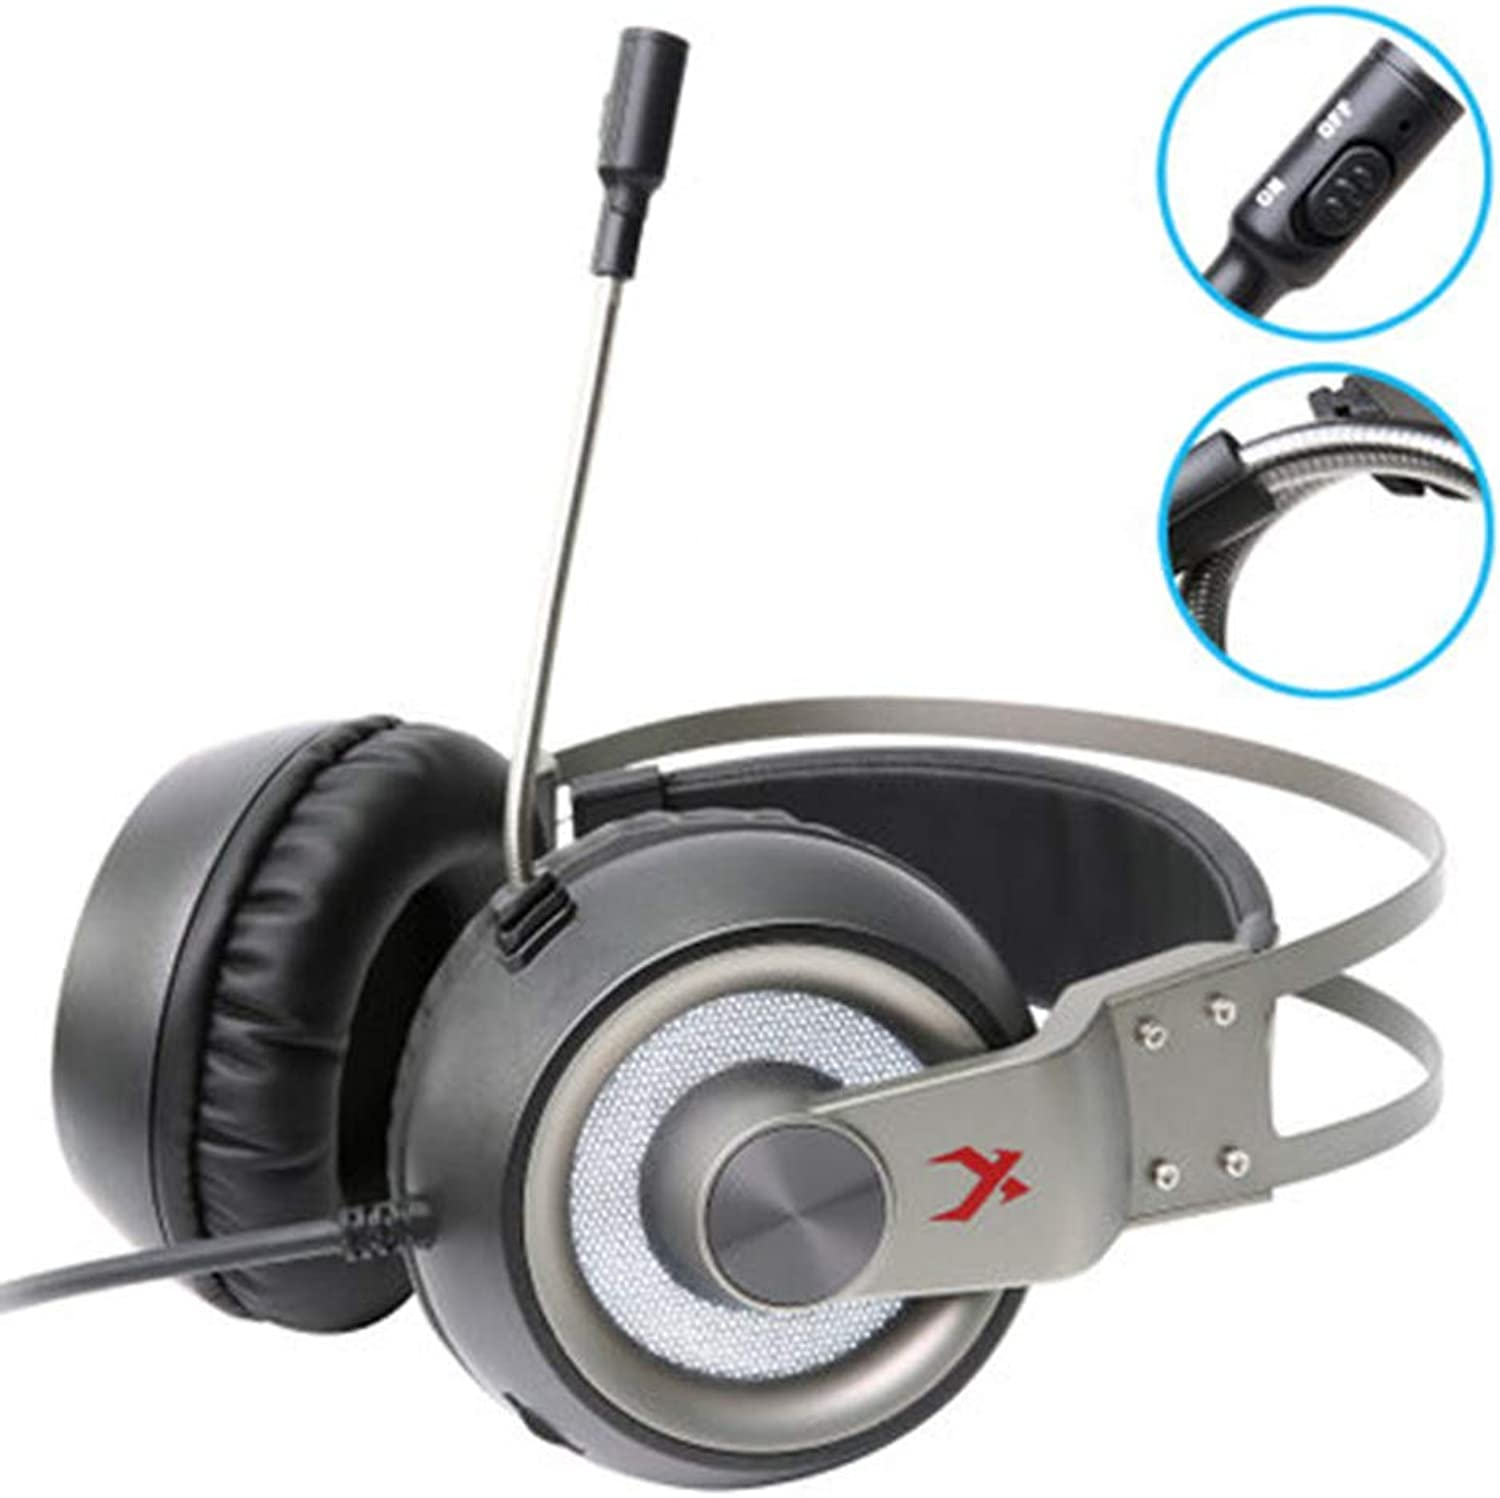 Chezaa XIBERIA K1Gaming Headphones with Microphone Headphones for PC   PS4  Laptop,High Sound Quality